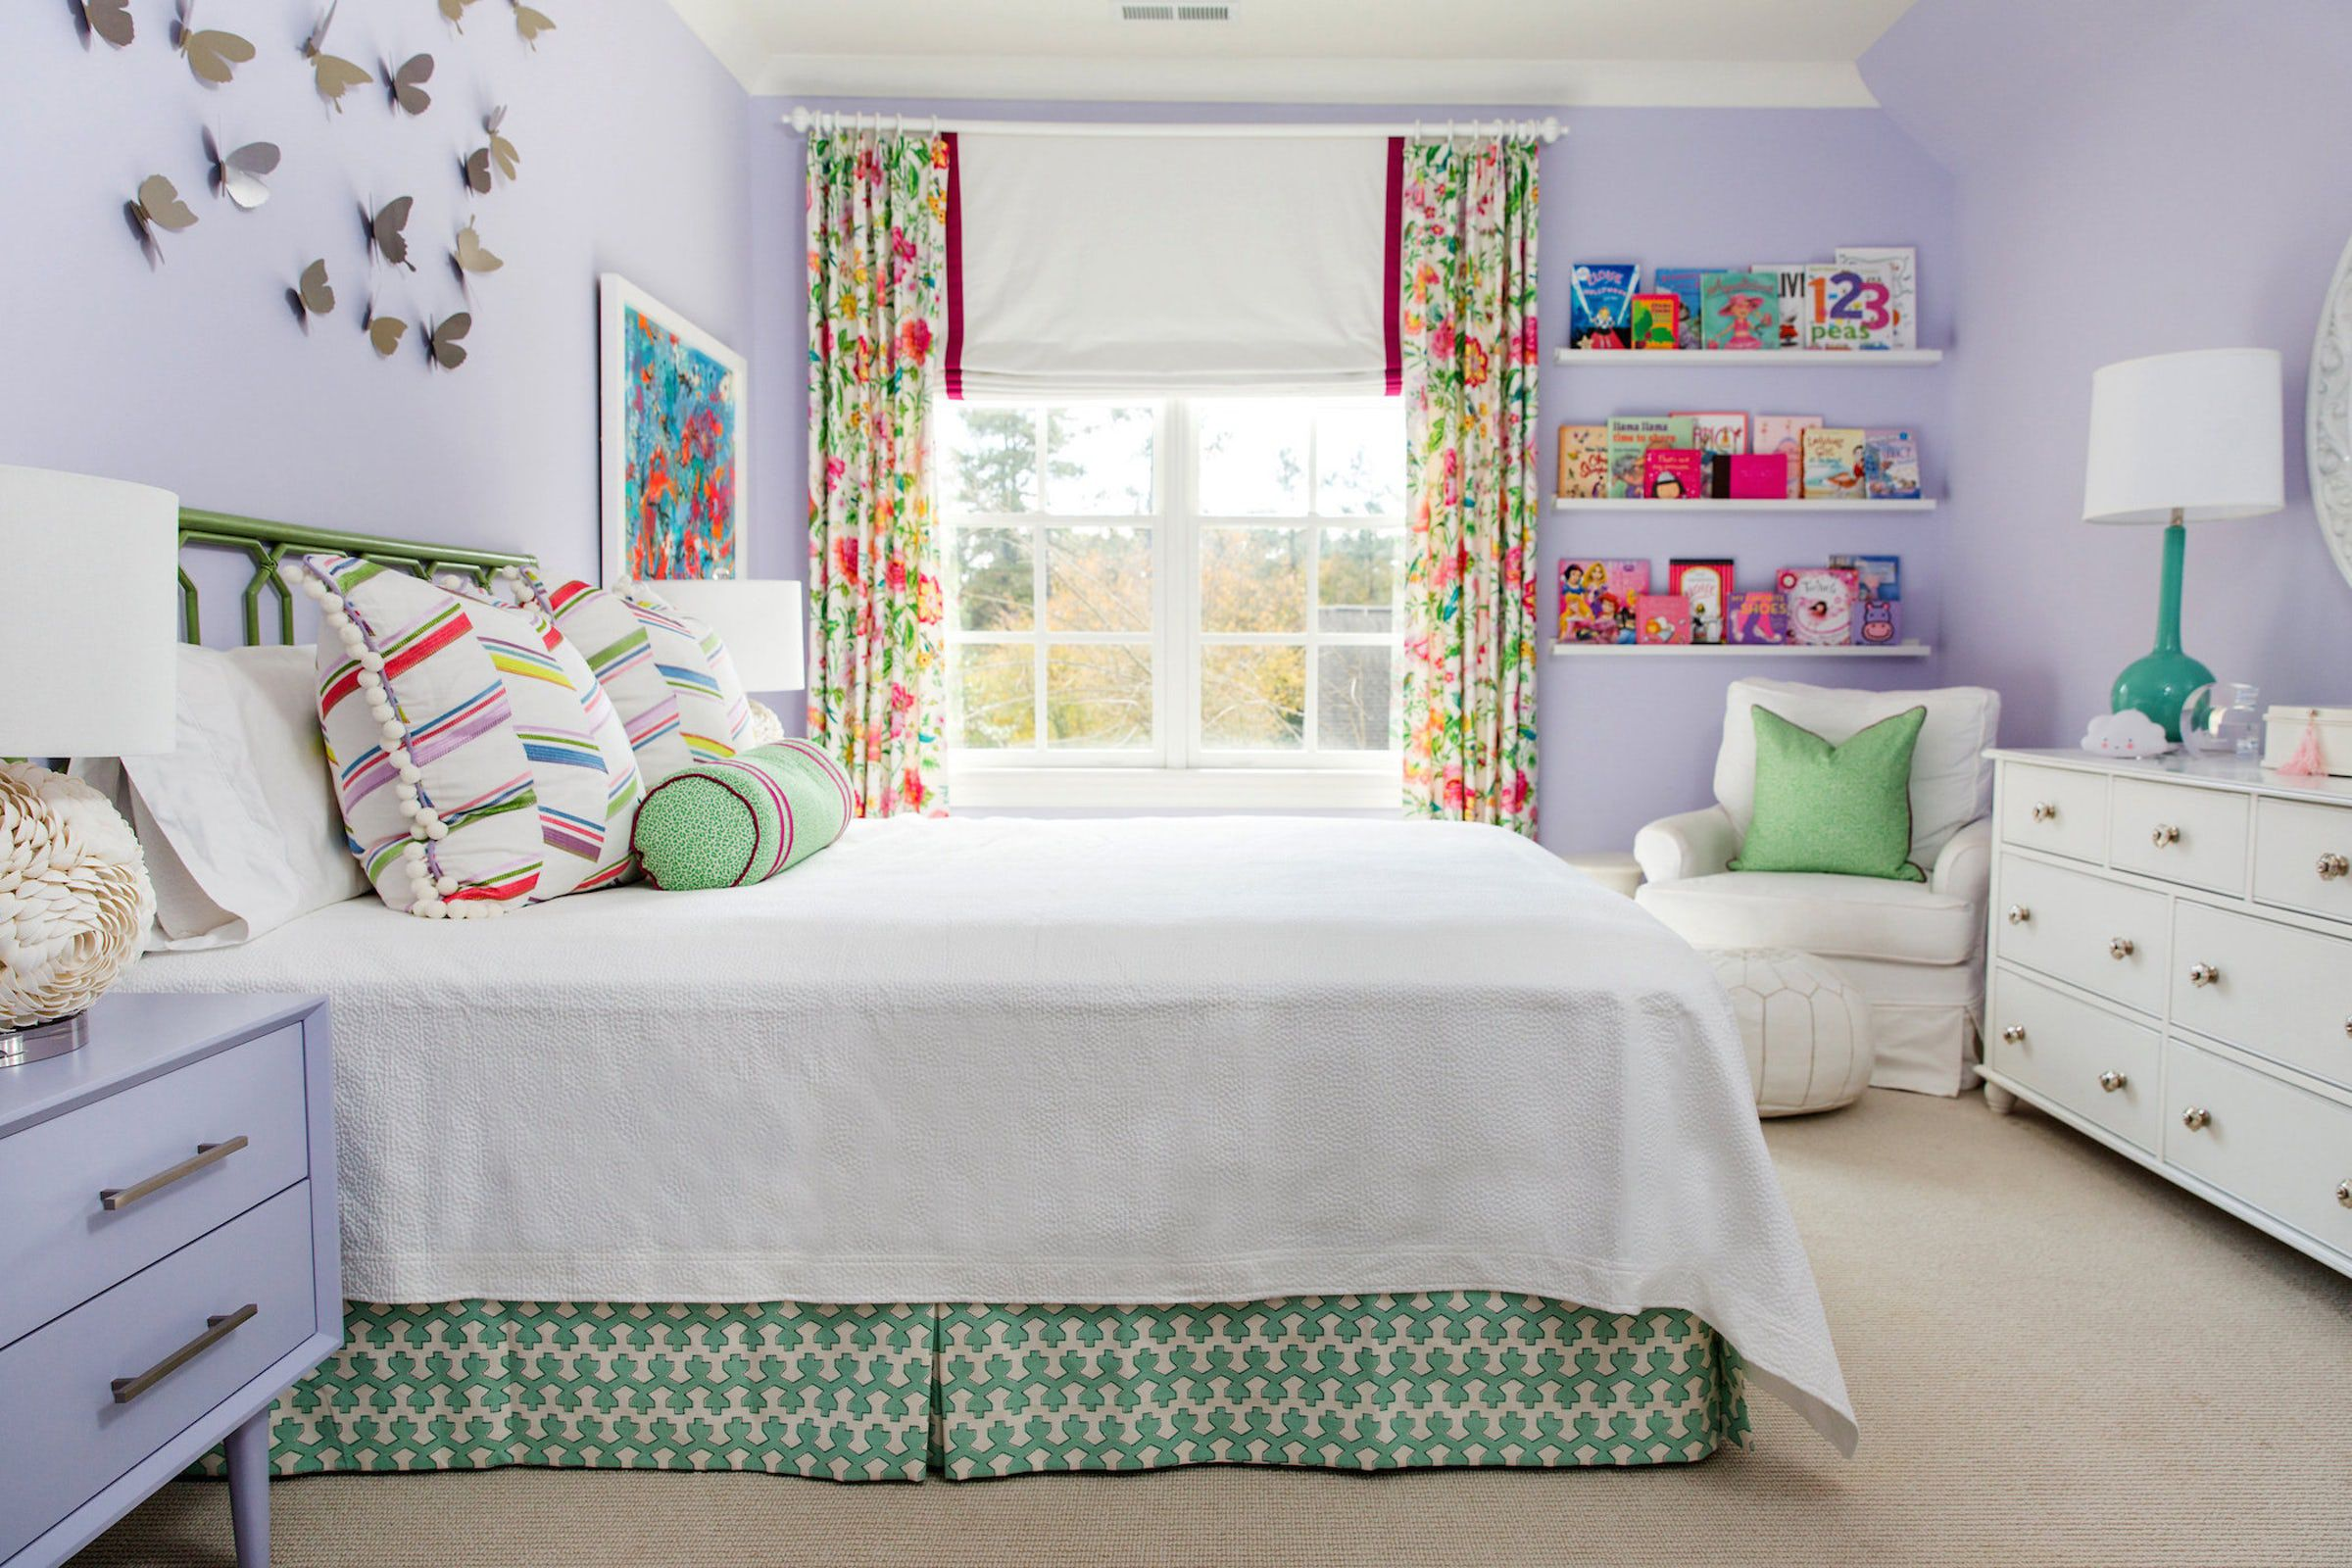 50 Small Bedroom Design Ideas - Decorating Tips for Small Bedrooms